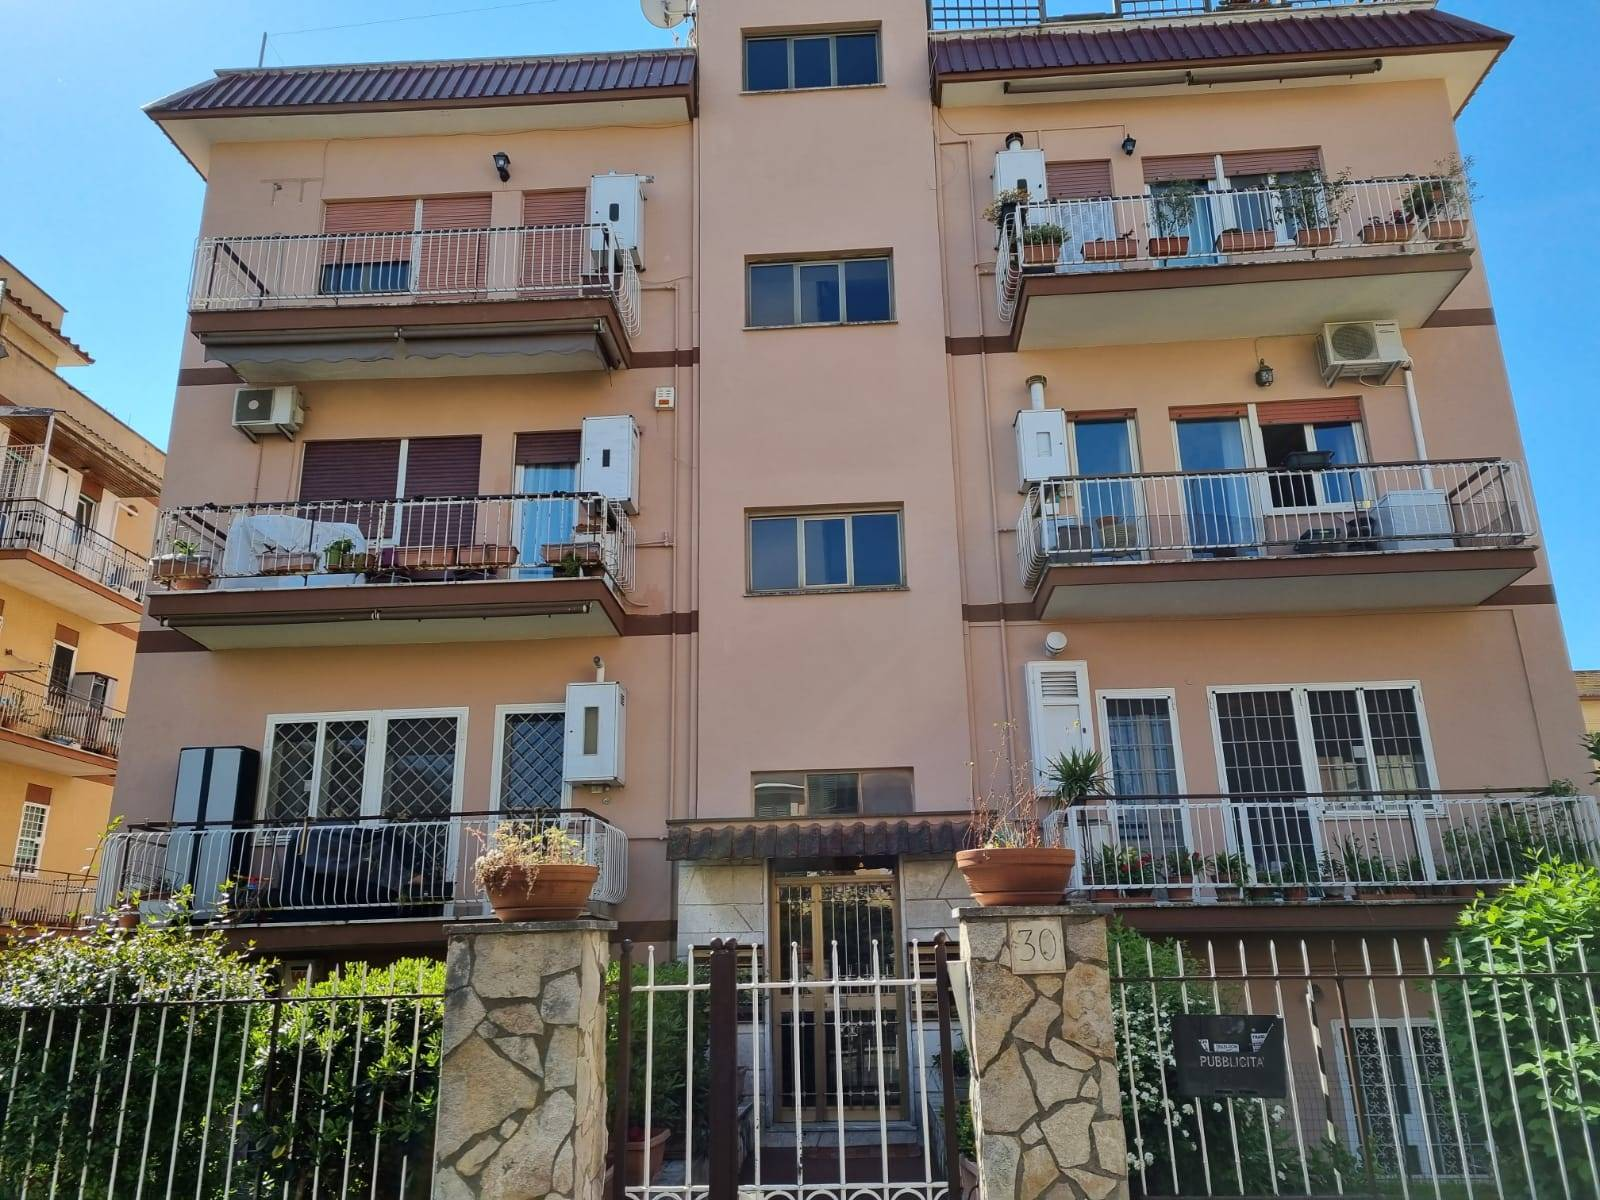 CASAL DÈ PAZZI, ROMA, Apartment for rent of 55 Sq. mt., Good condition, Heating Individual heating system, Energetic class: G, Epi: 175 kwh/m2 year,